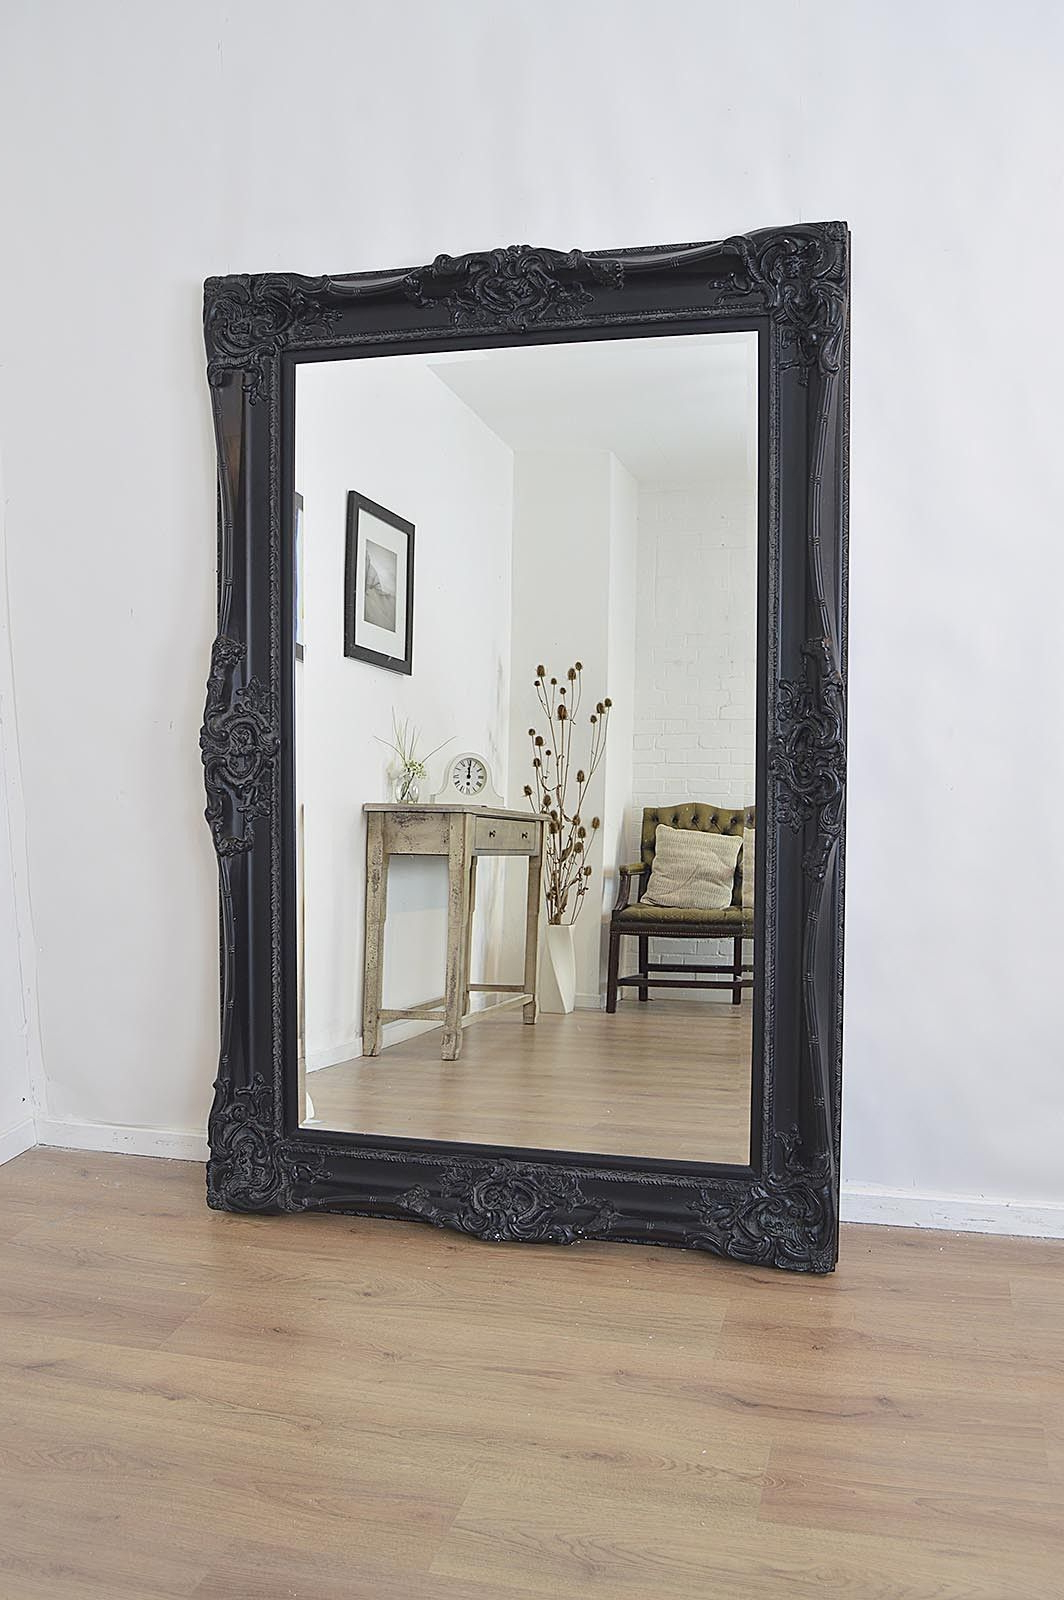 6Ft X 4Ft Large Black Antique Style Rectangle Wood Wall For Famous Large Black Wall Mirrors (View 1 of 20)